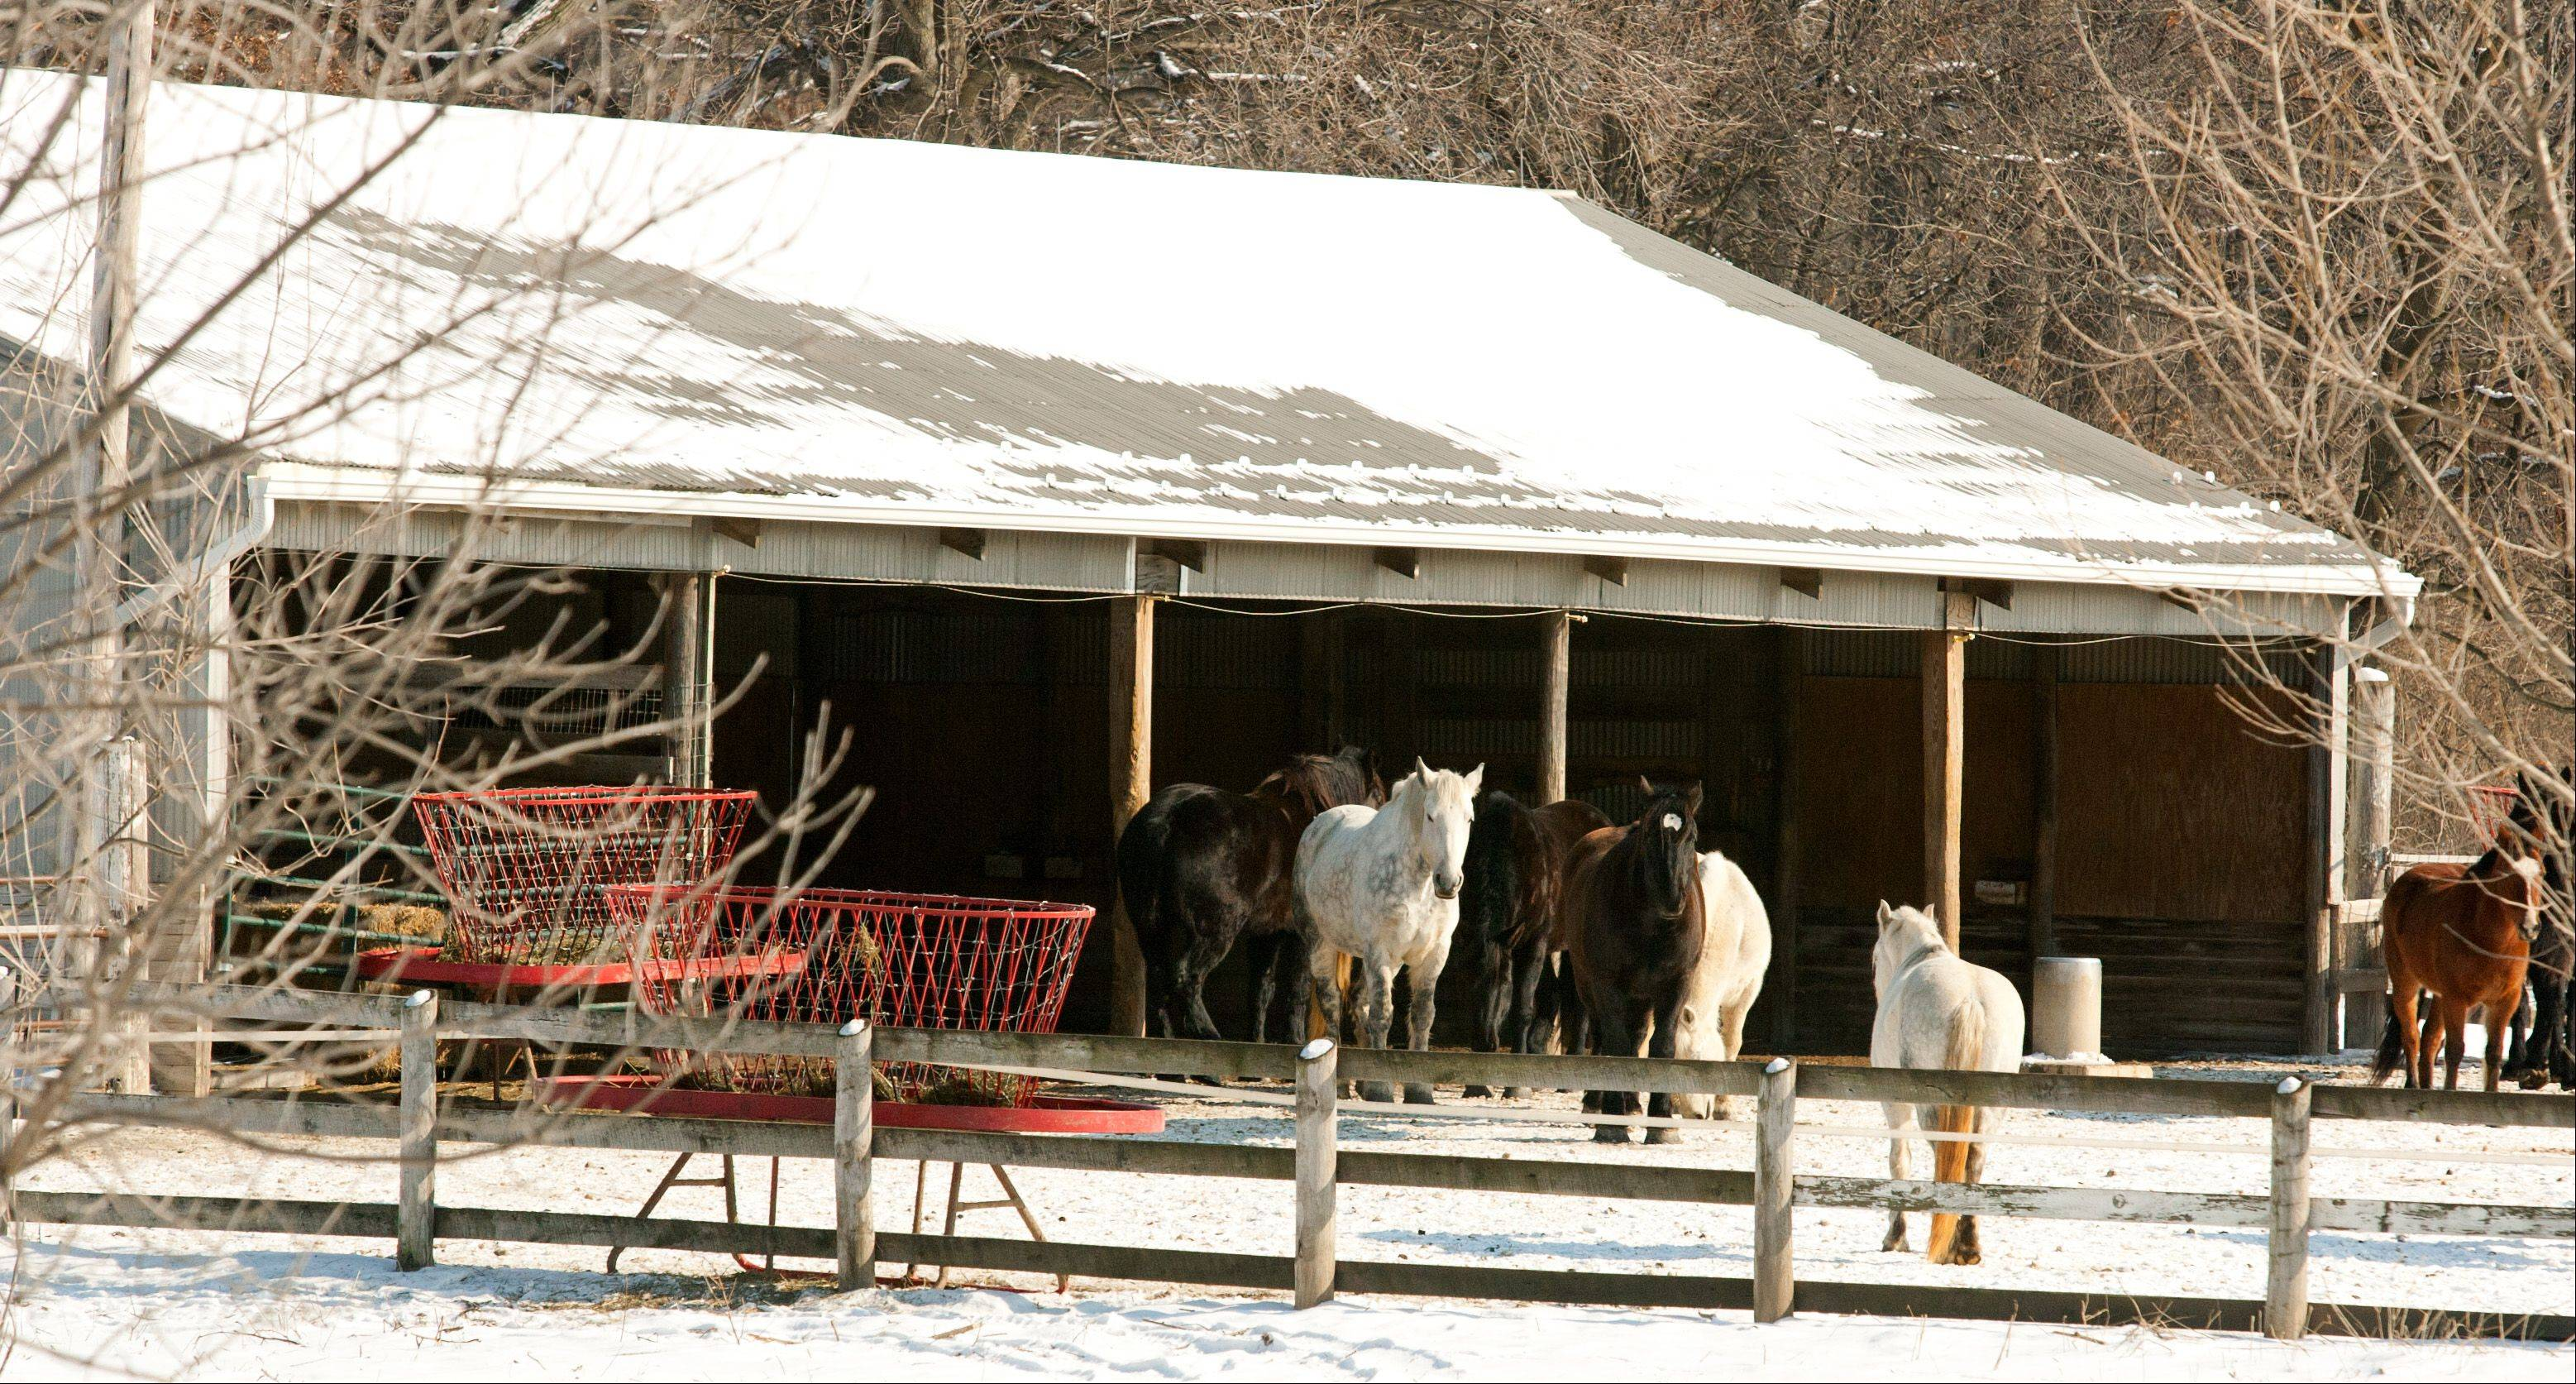 DuPage County Forest Preserve commissioners are expected to decide whether to follow an expert�s recommendation and retrain lesson horses from Danada Equestrian Center in Wheaton.